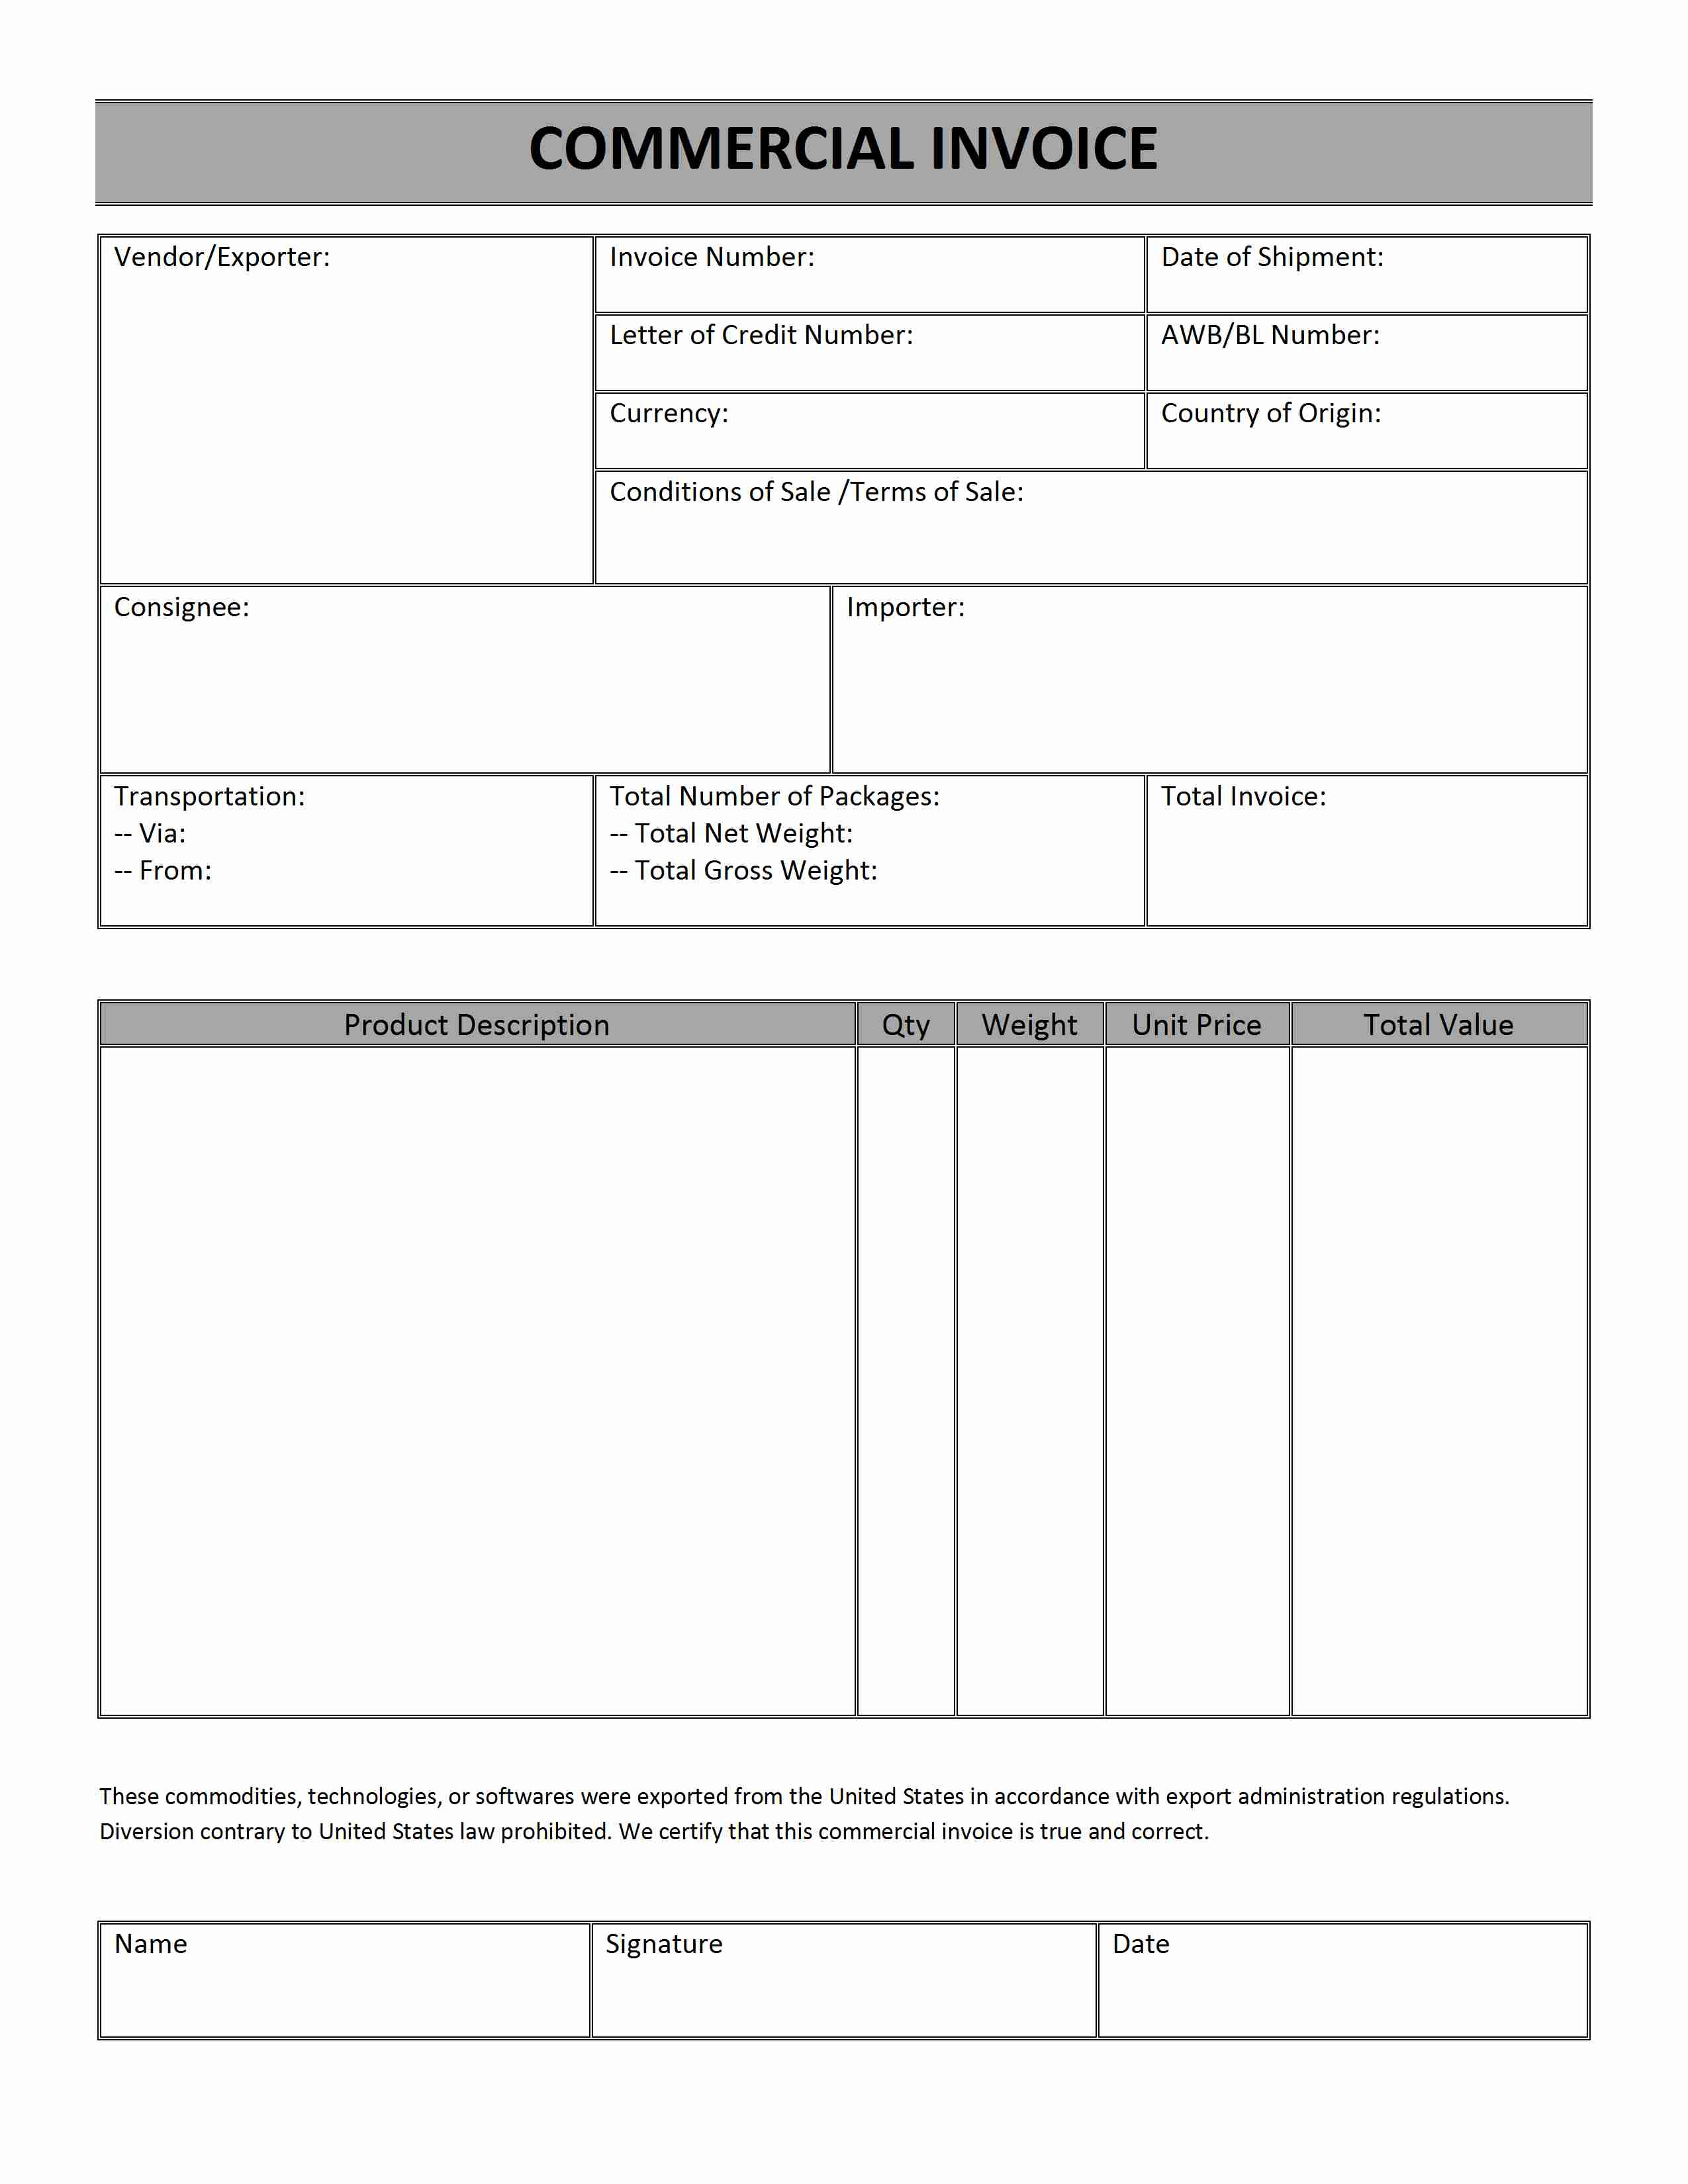 Darkfaderus  Pretty Printable Sales Invoice Simple Invoice Form Free Invoice  With Likable Printable Receipt Free  Free Printable Raffle Tickets  Receipt   Printable With Endearing Pdf Invoices Also Make Free Invoice In Addition Export Invoice And Invoice Funding Companies As Well As Free Construction Invoice Template Additionally Snow Removal Invoice Template From Happytomco With Darkfaderus  Likable Printable Sales Invoice Simple Invoice Form Free Invoice  With Endearing Printable Receipt Free  Free Printable Raffle Tickets  Receipt   Printable And Pretty Pdf Invoices Also Make Free Invoice In Addition Export Invoice From Happytomco